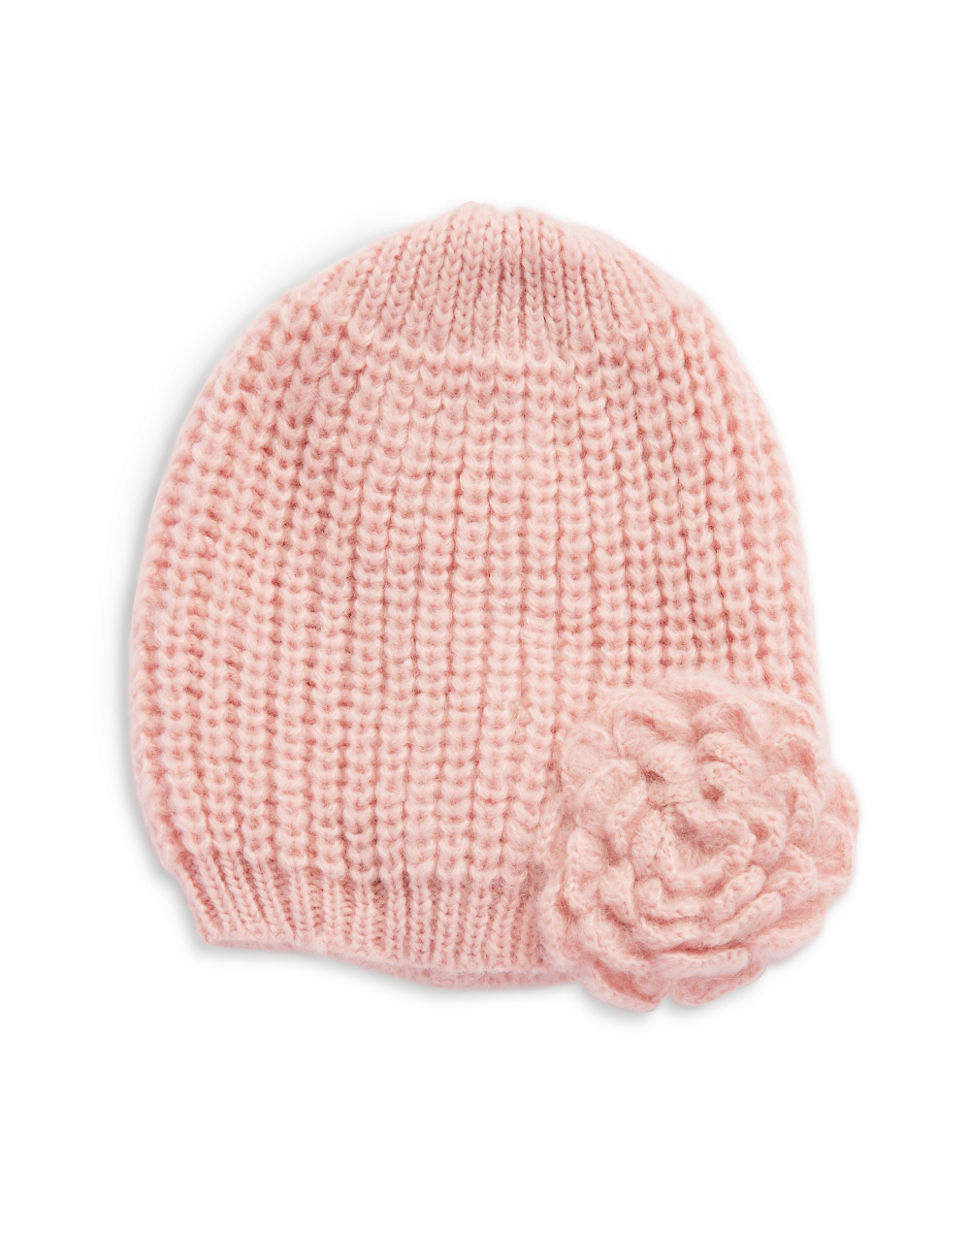 Knitting Pattern For Beanie With Flower : Wooden ships Knit Flower Beanie in Pink Lyst